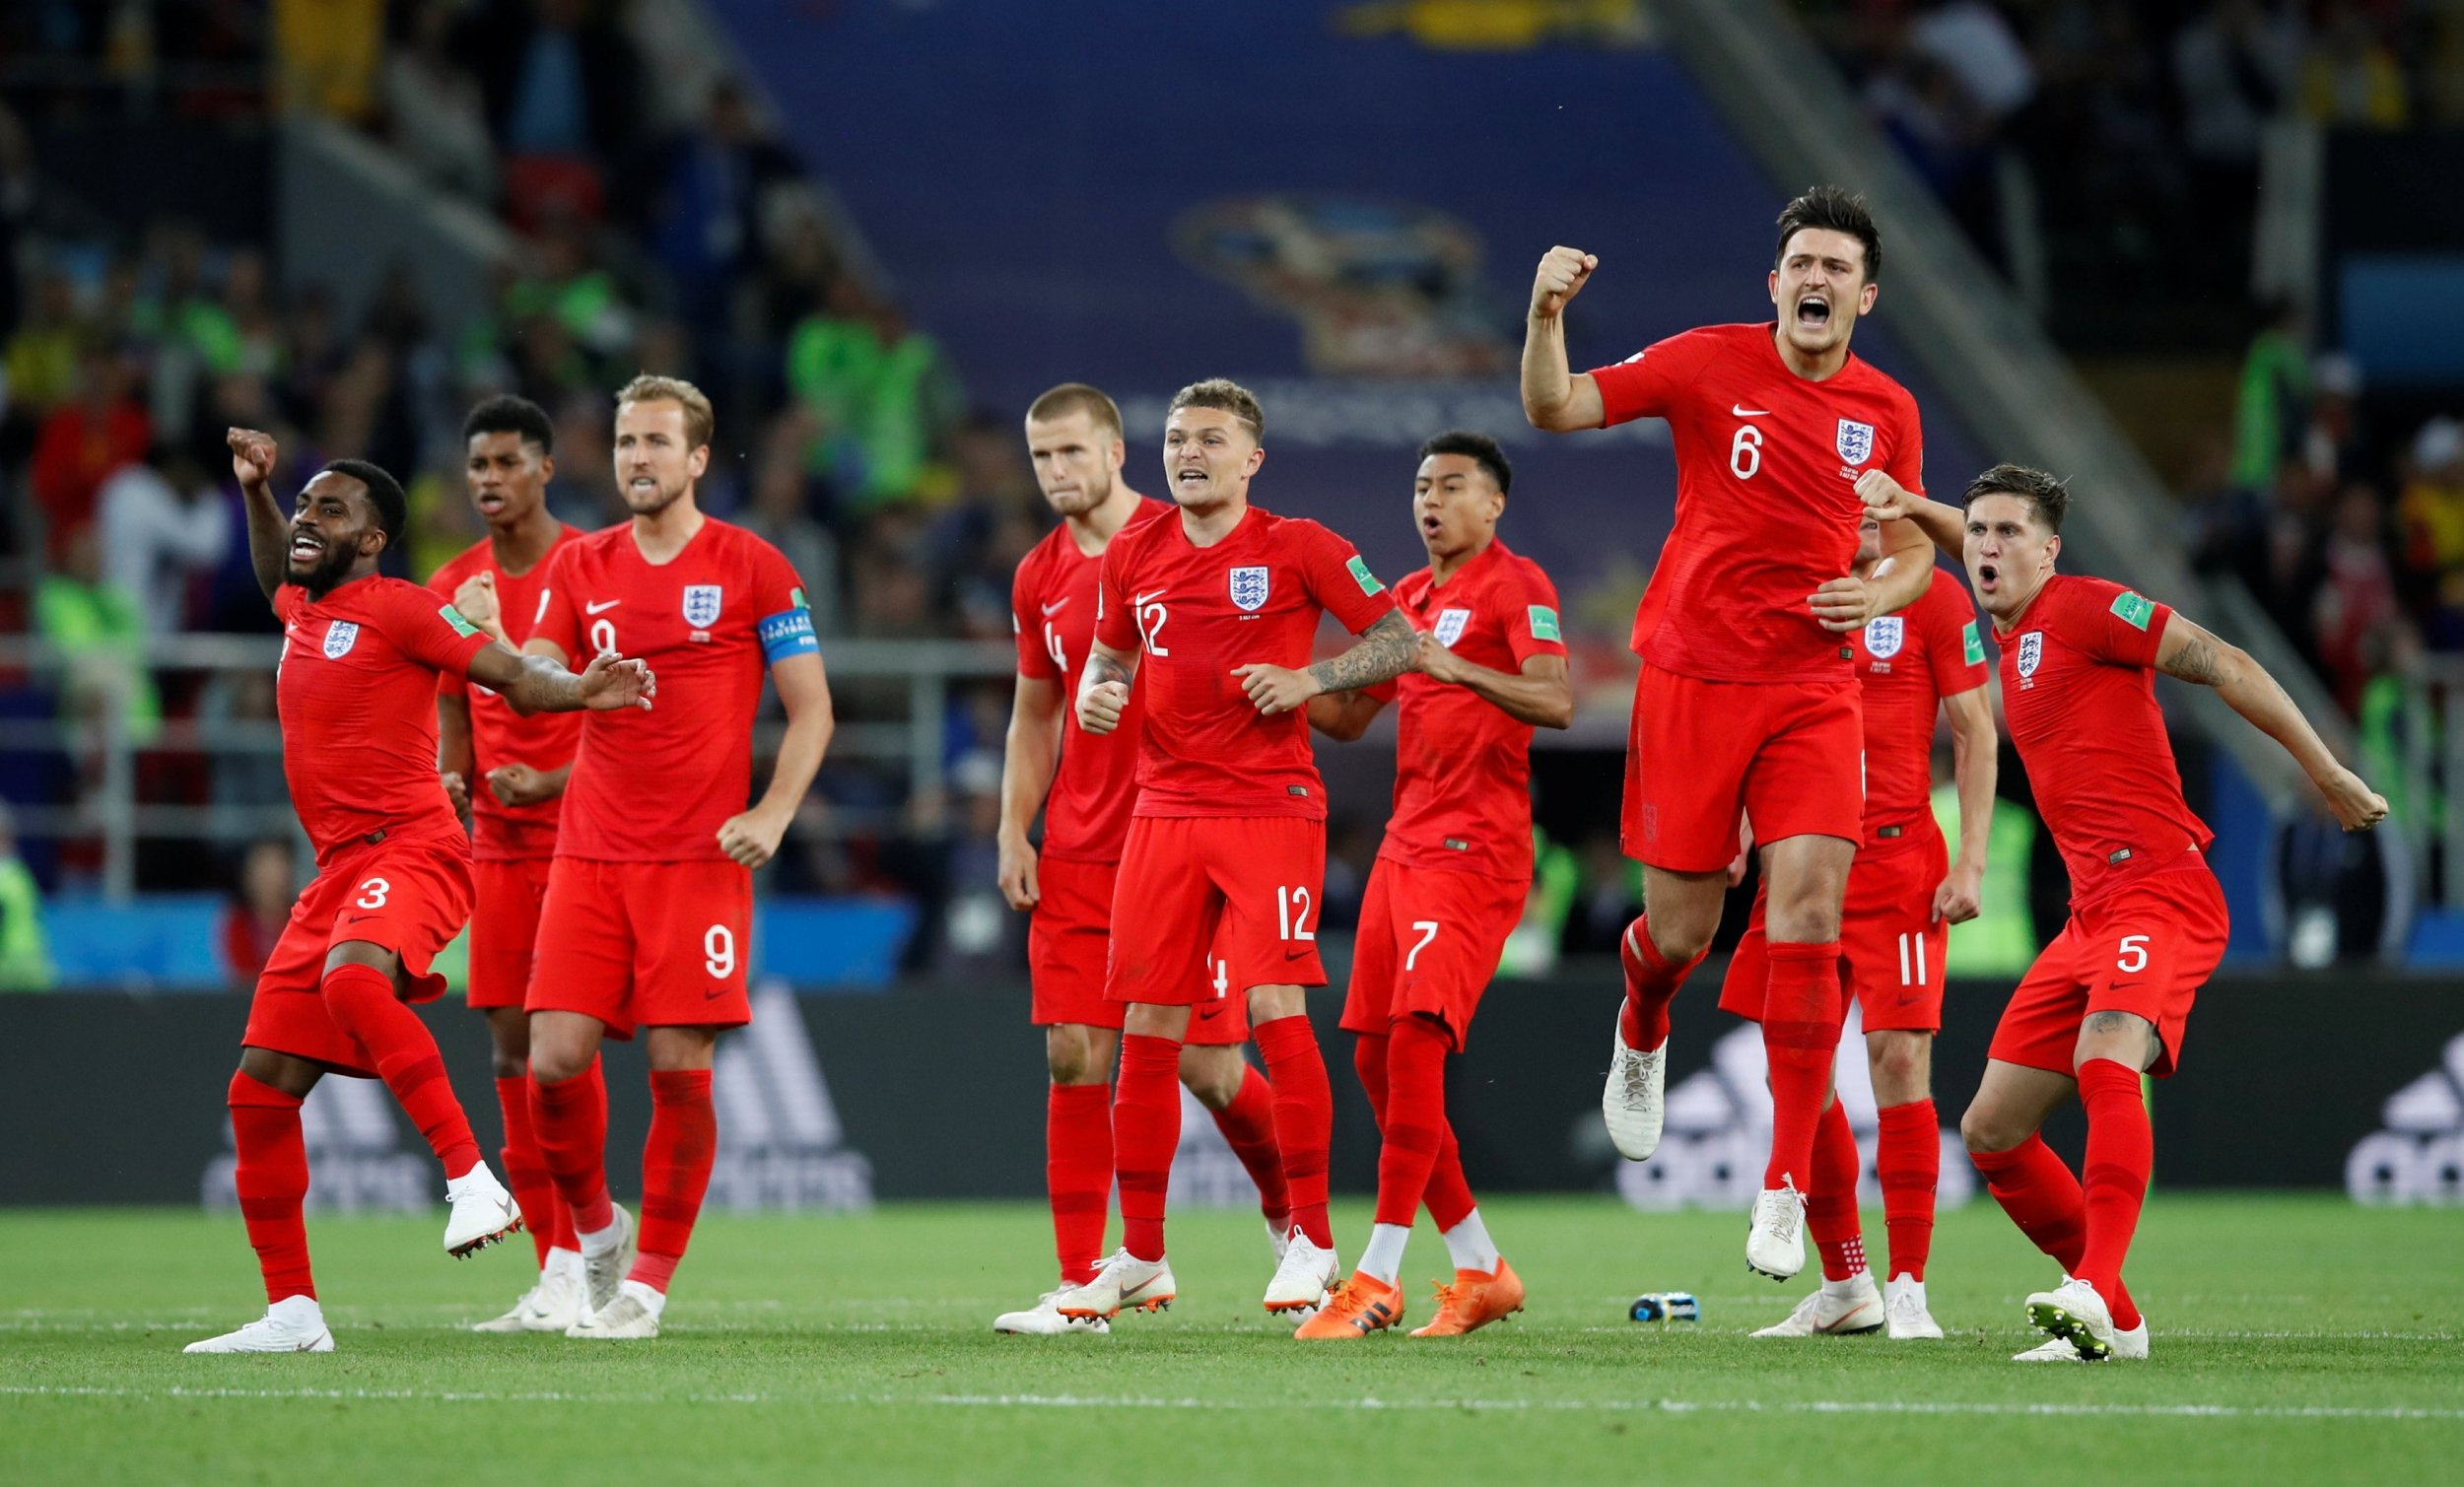 Images of England Football Results - #rock-cafe